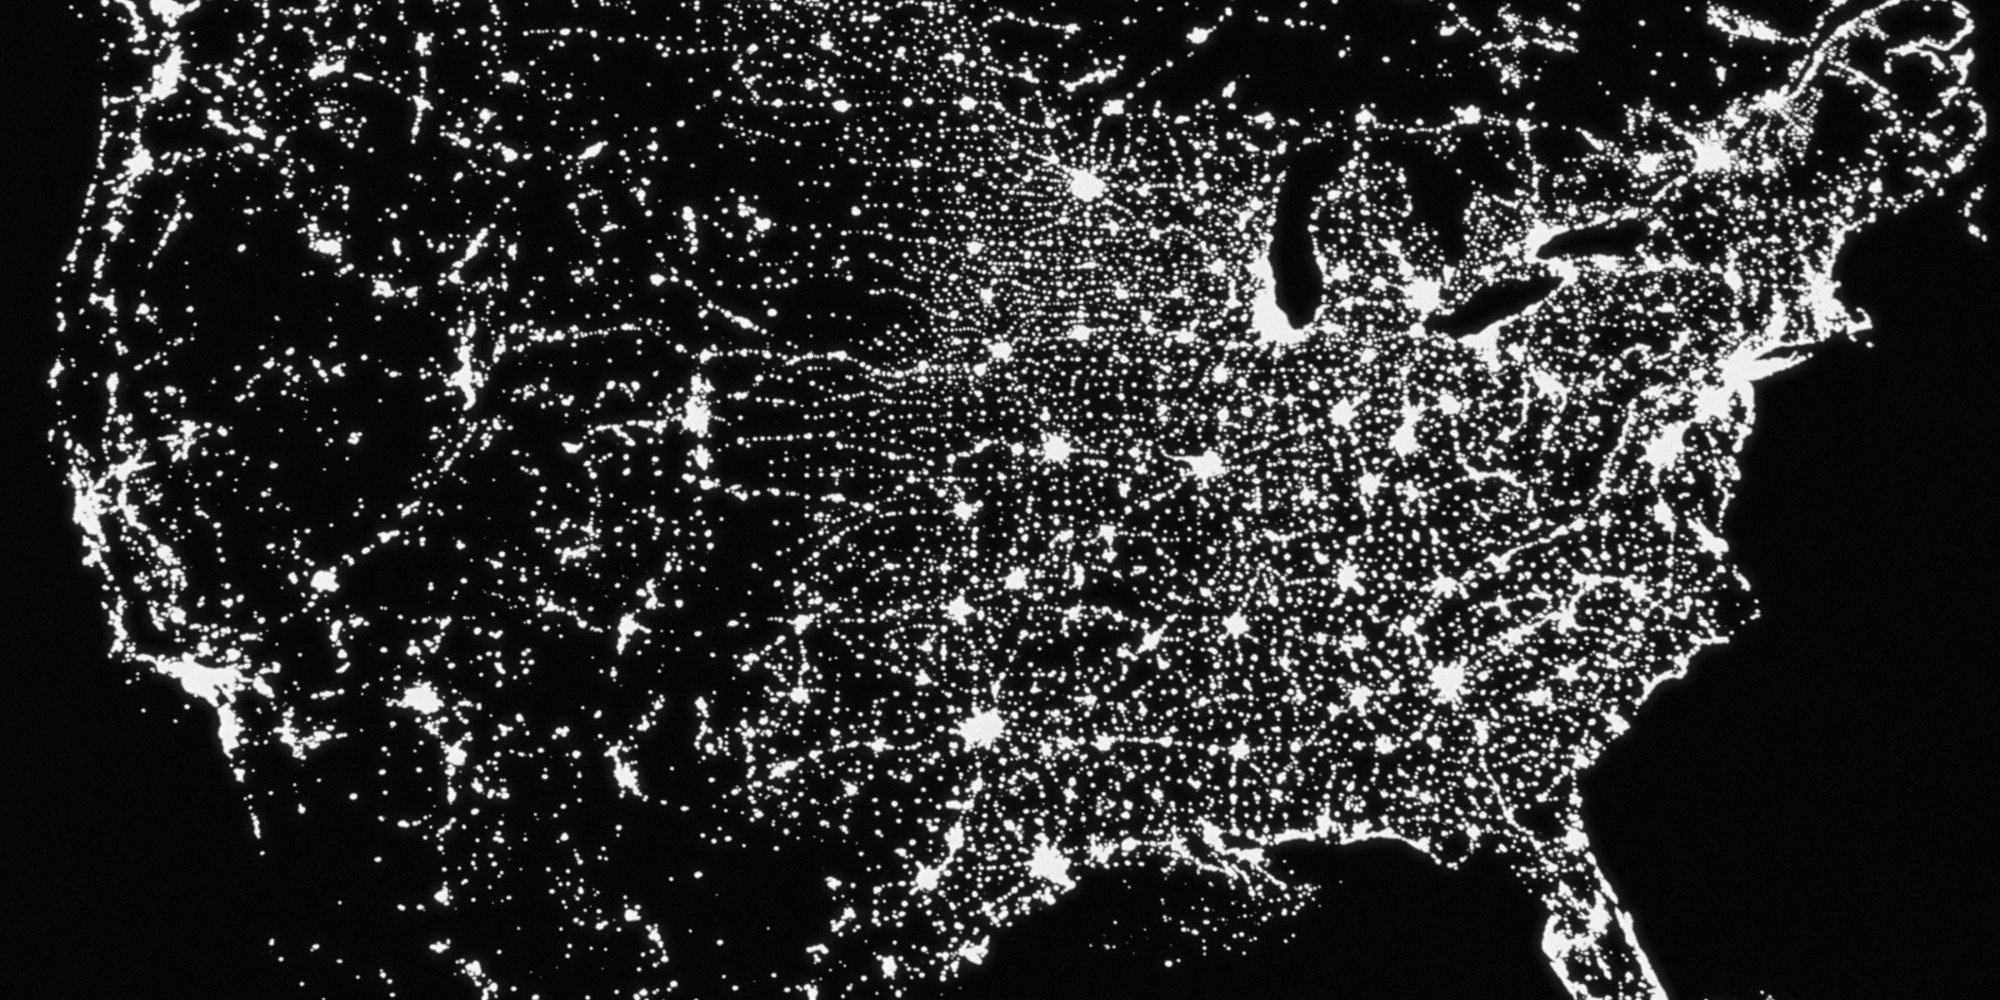 SVS Great Zoom Out Of Chicago IL The Adler Planetarium Apples D - Satellite map of usa